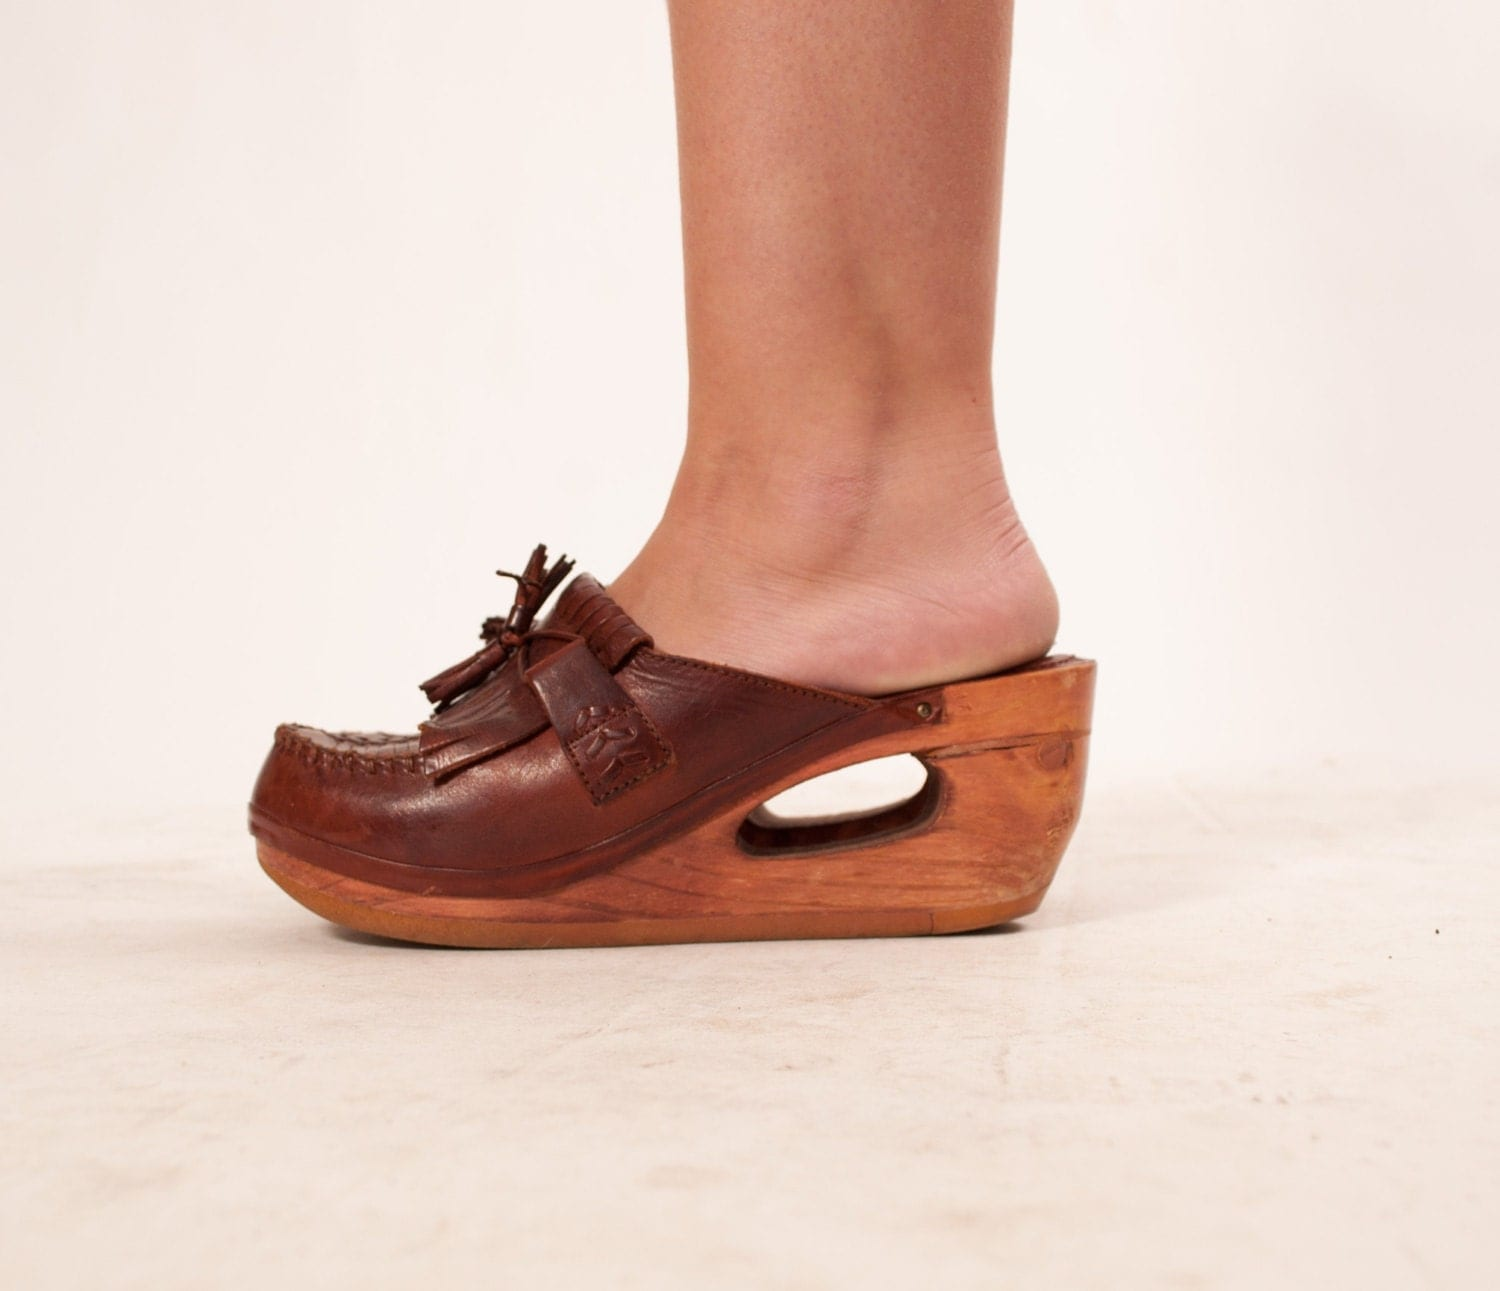 Vintage 70s Platform Shoes 1970s Clogs Wood Wedges